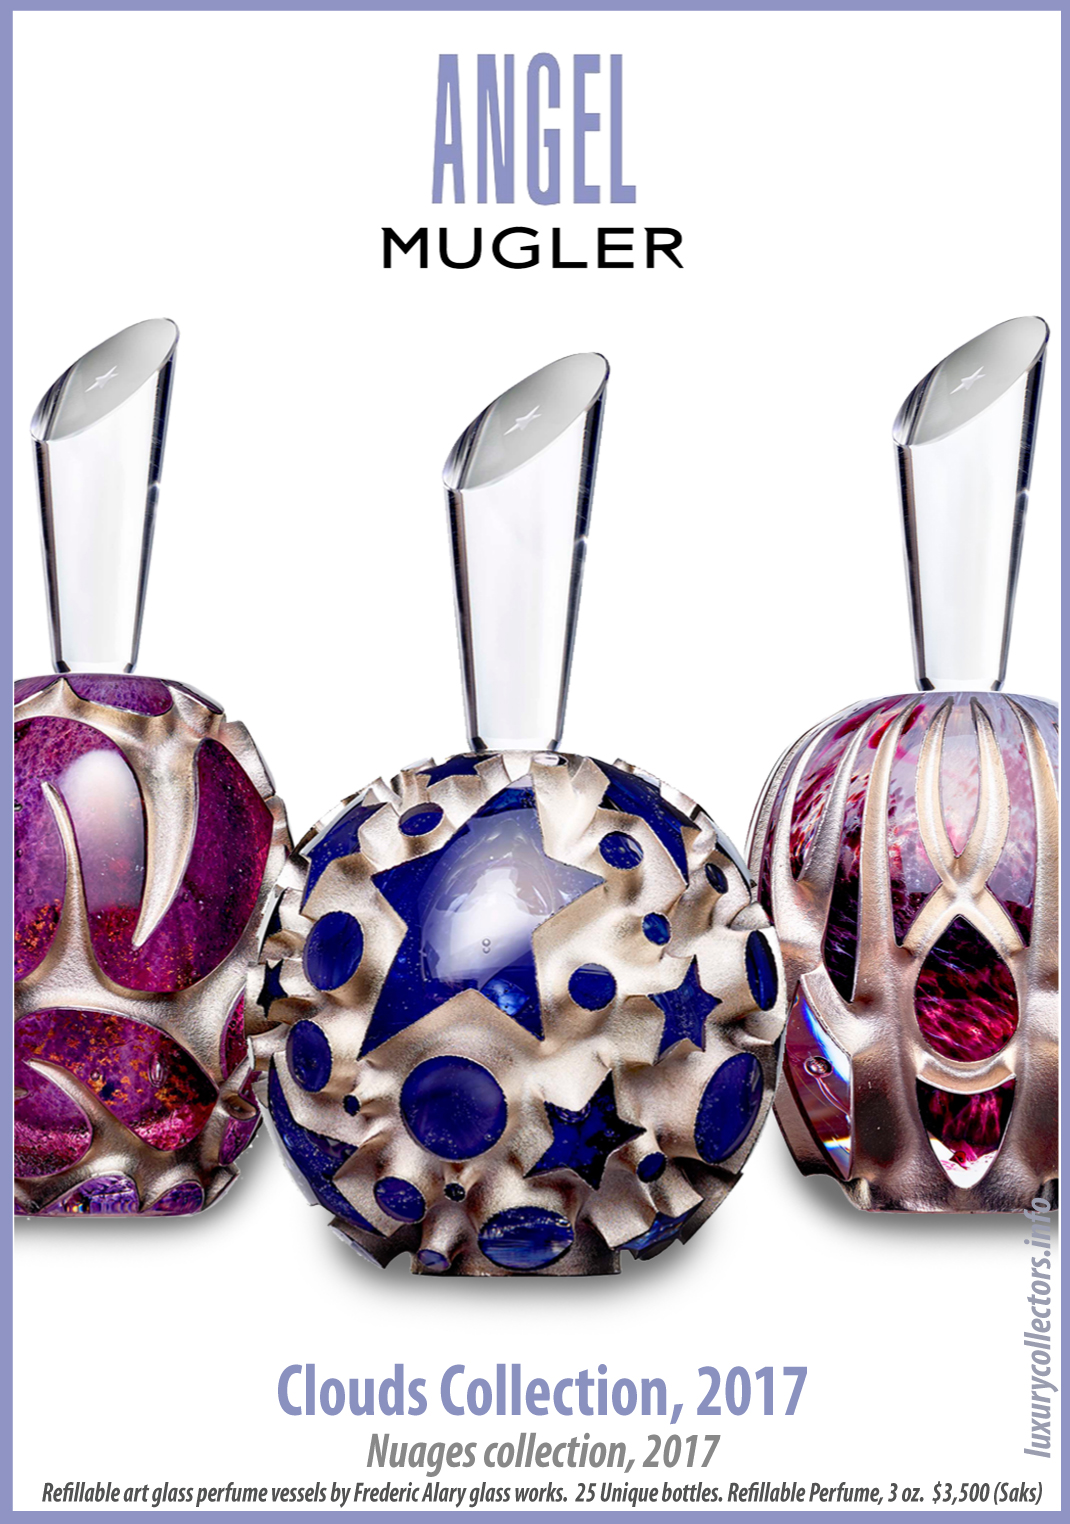 Thierry Mugler Angel Perfume Collector's Limited Edition Bottle 2017 Clouds Cloud Egg Eggs Nuages Unique Art Glass Mouthblown